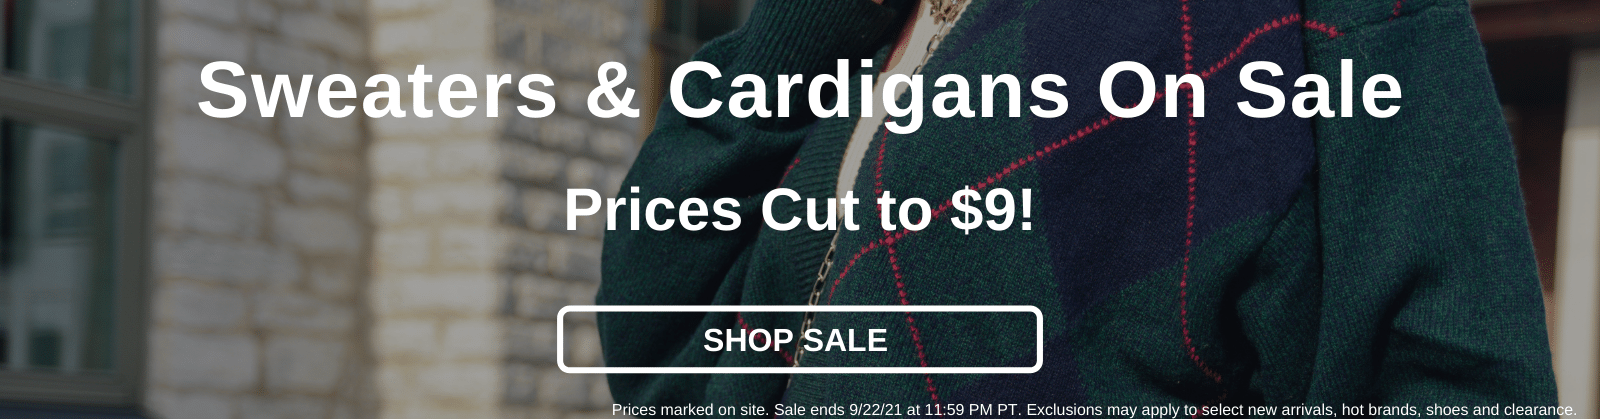 Sweaters & Cardigans On Sale Prices Cut to $9! [Shop Sale]